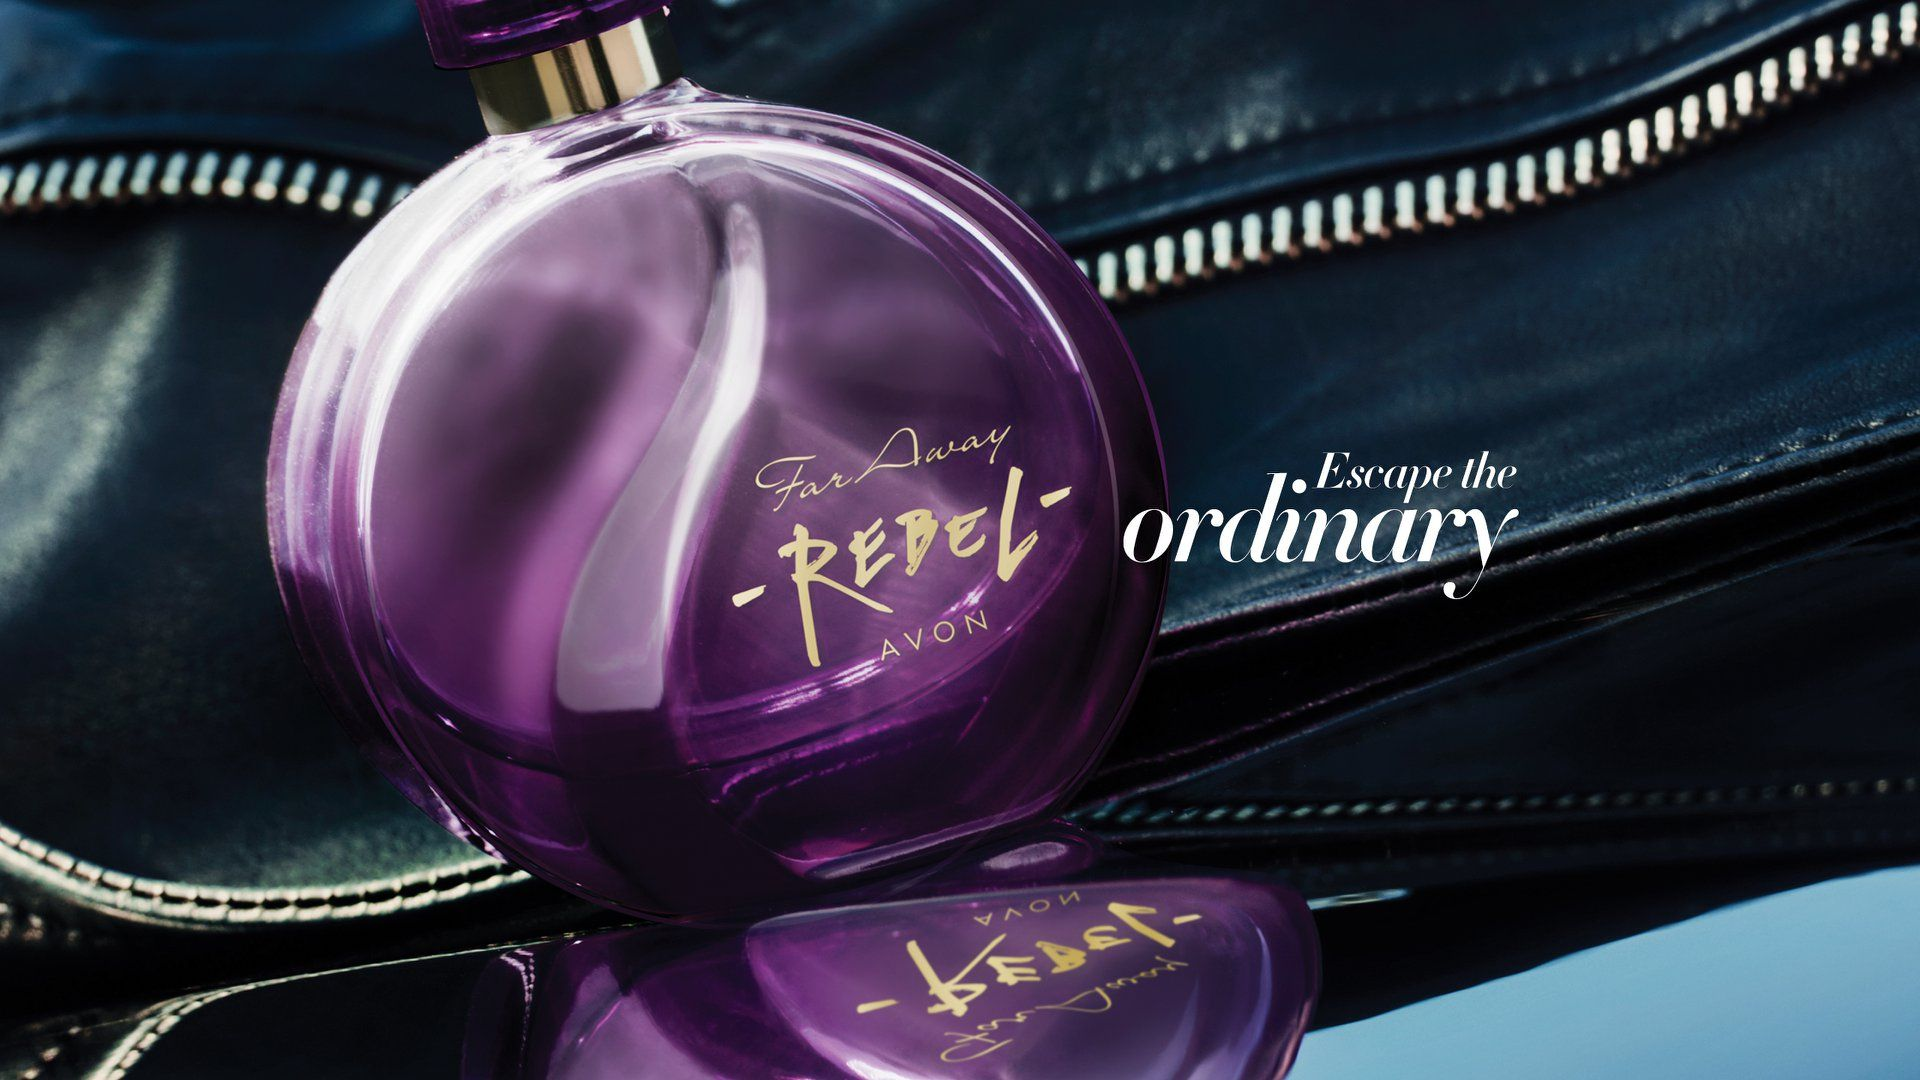 perfume avon far away rebel